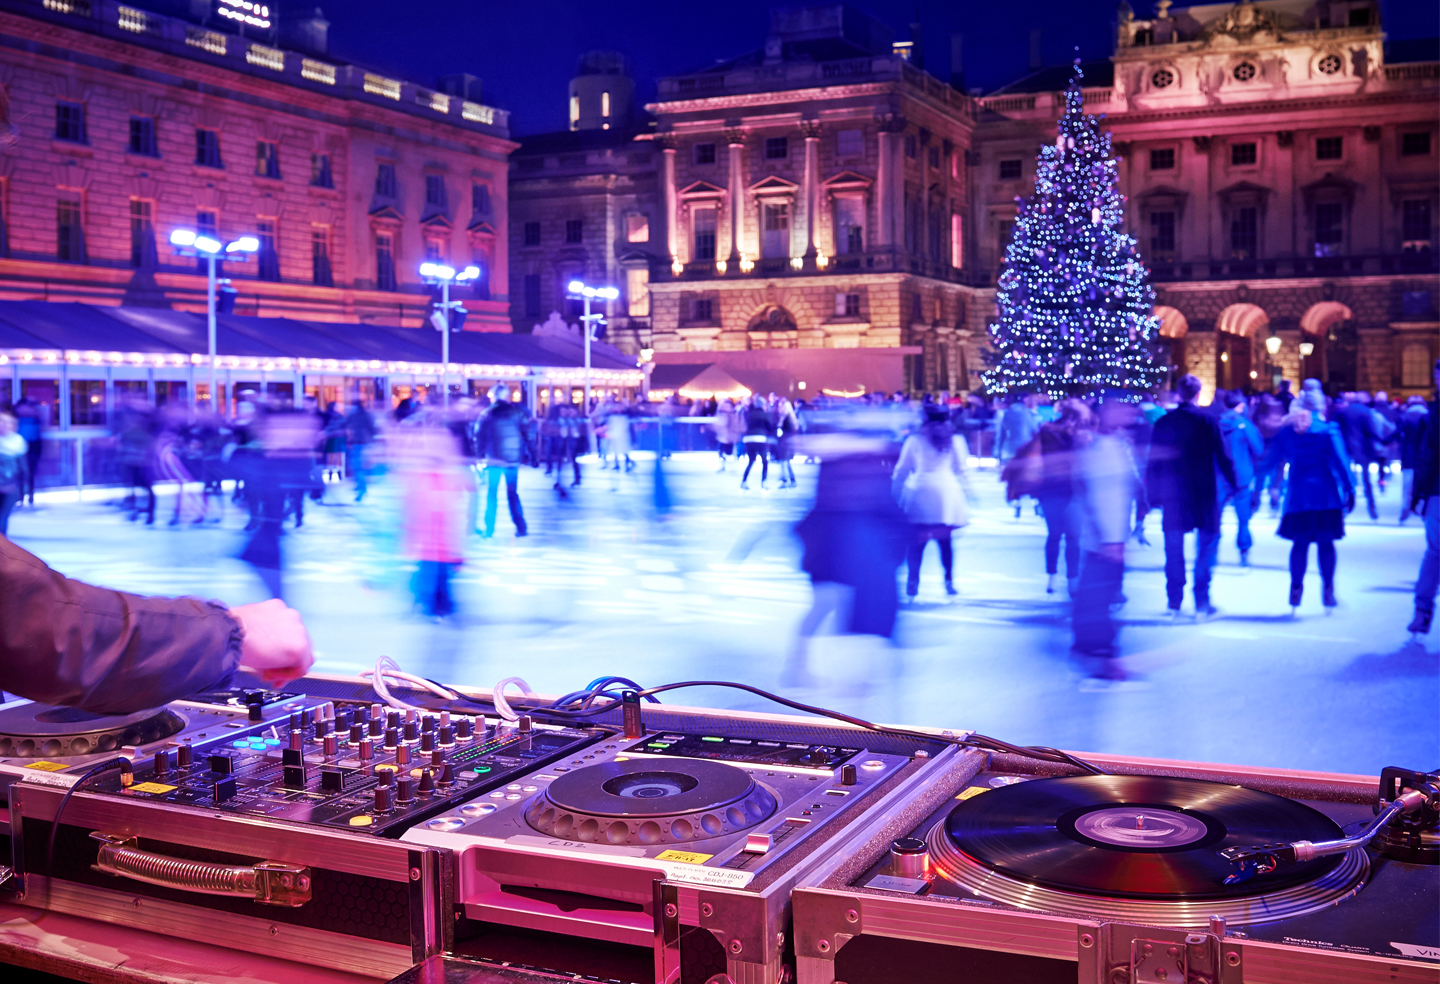 Marvelous Club Nights  Somerset House With Exquisite Land Drains For Gardens Besides Gardening Equipment List Furthermore Covent Garden Apple Store With Awesome Springfield Garden Centre Also Pizza Express Piccadilly Gardens In Addition Raised Garden Border Ideas And The Sally Gardens As Well As Garden Watch Additionally Prefab Sprout Lions In My Own Garden From Somersethouseorguk With   Exquisite Club Nights  Somerset House With Awesome Land Drains For Gardens Besides Gardening Equipment List Furthermore Covent Garden Apple Store And Marvelous Springfield Garden Centre Also Pizza Express Piccadilly Gardens In Addition Raised Garden Border Ideas From Somersethouseorguk